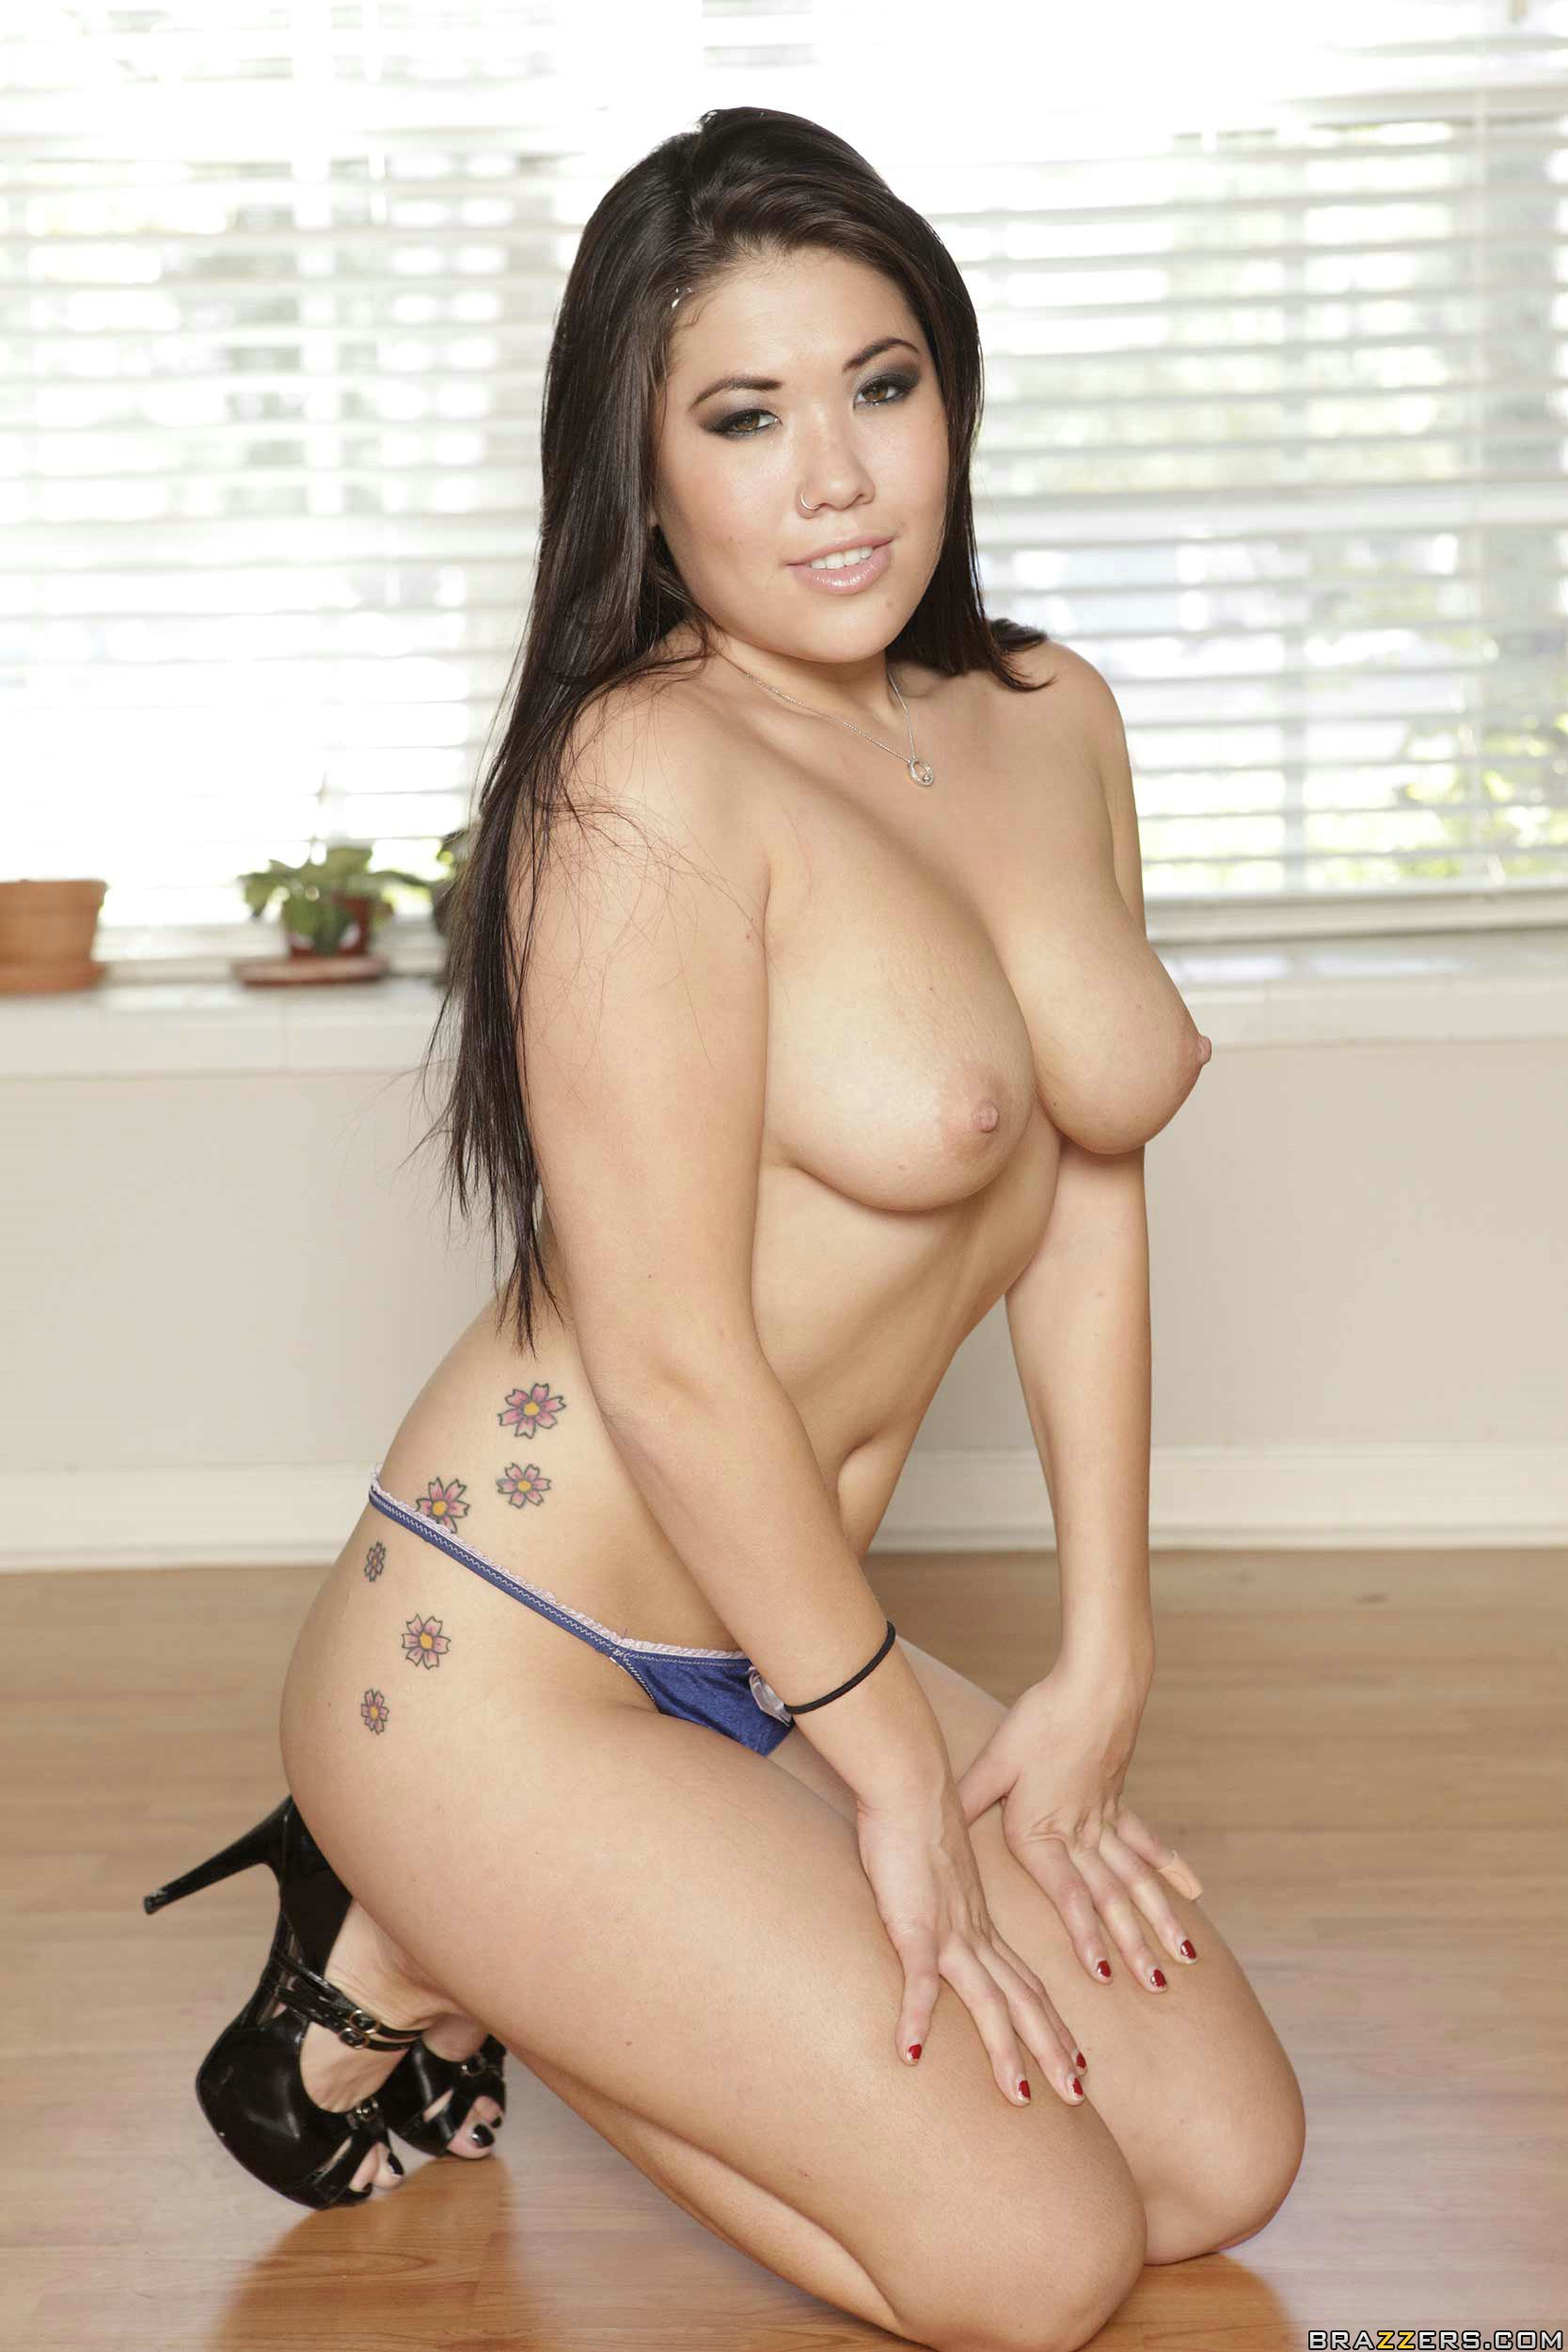 This london keyes remarkable